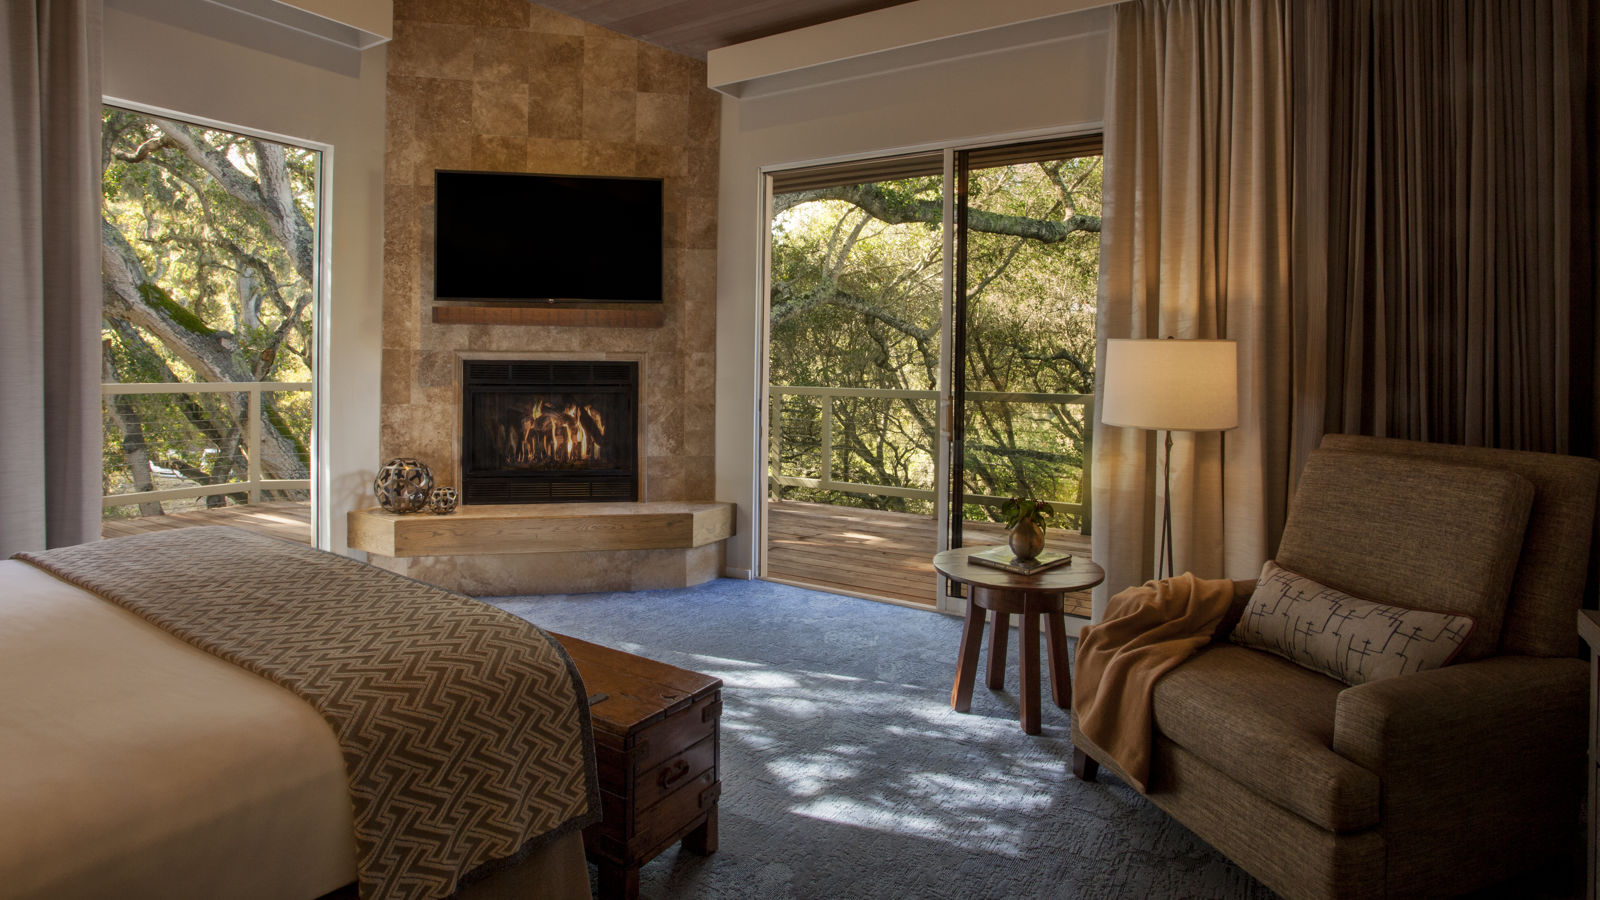 Carmel Valley Ranch_Accommodations_Suite_Garland_Bedroom_Master_6339_BM